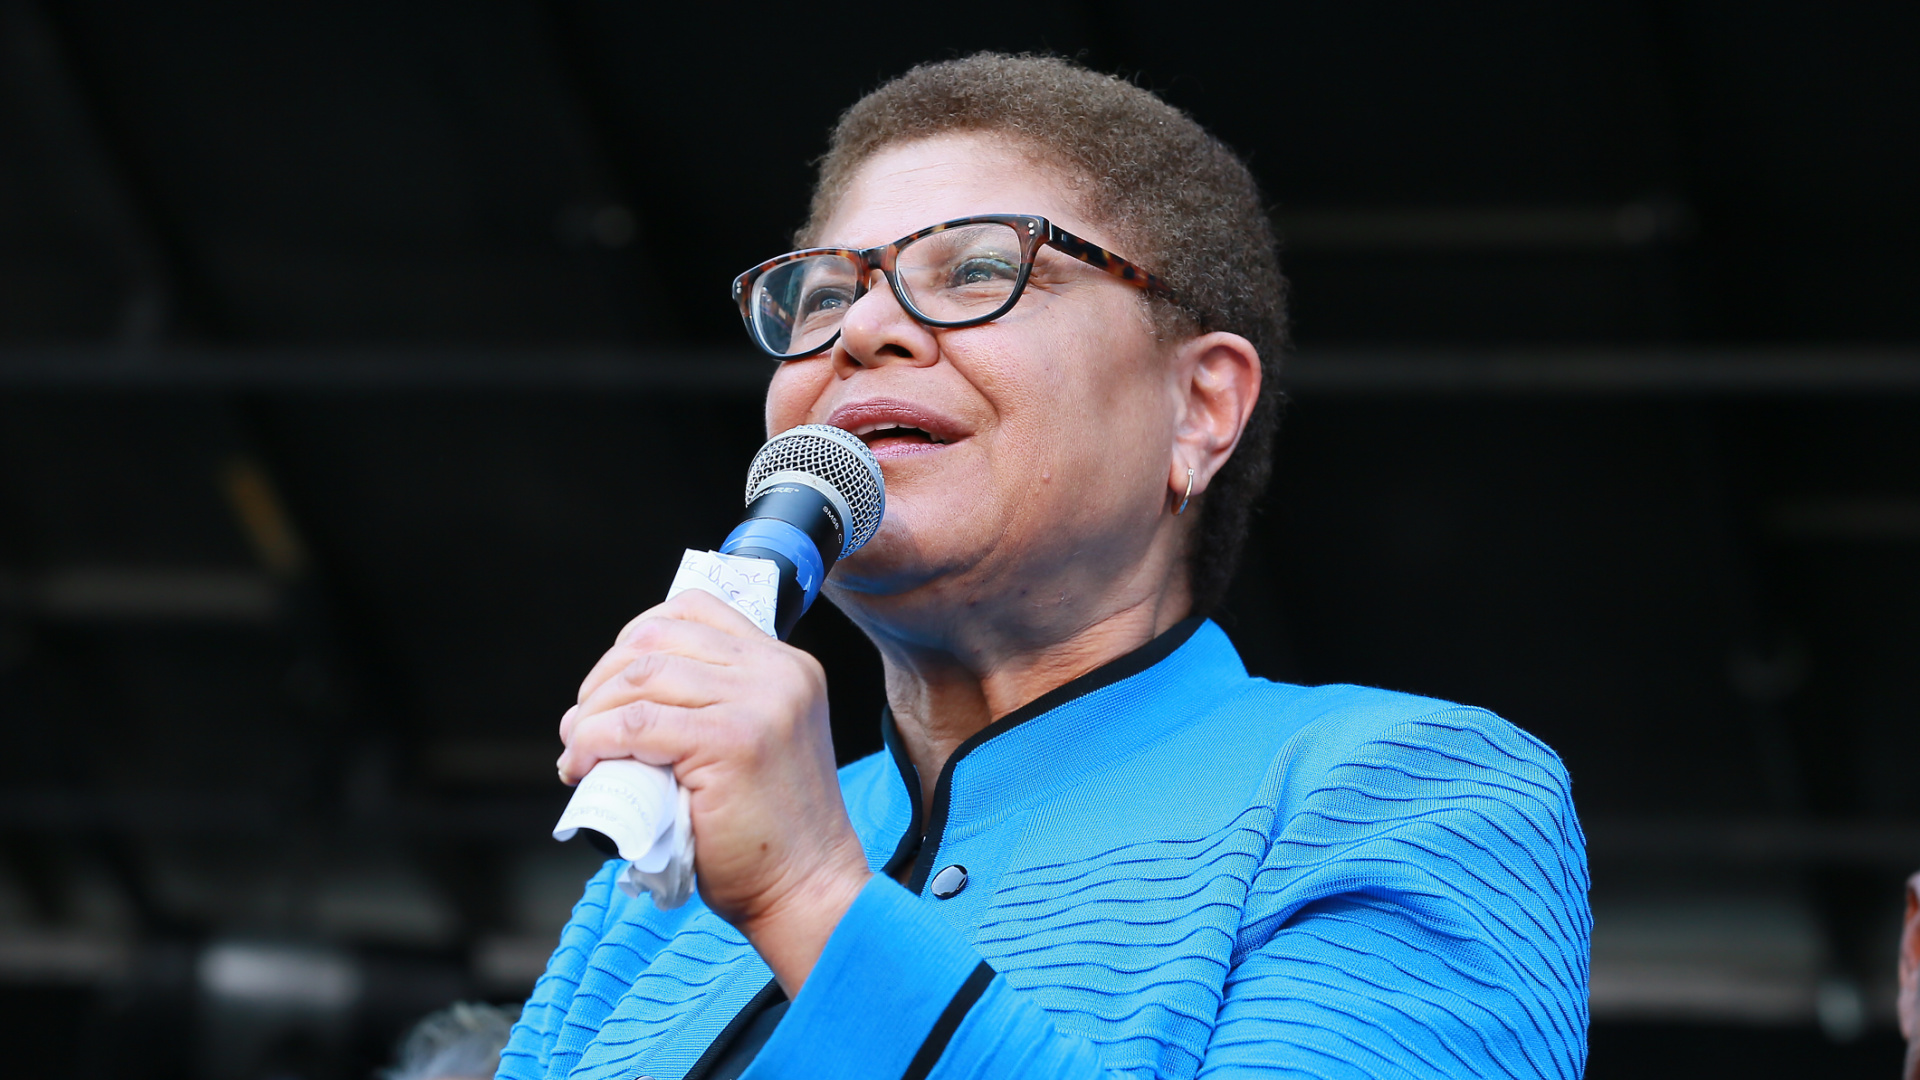 Congresswoman Karen Bass attends the official unveiling of City Of Los Angeles' Obama Boulevard in honor of the 44th President of the United States of America on May 4, 2019 in Los Angeles. (Leon Bennett/Getty Images)